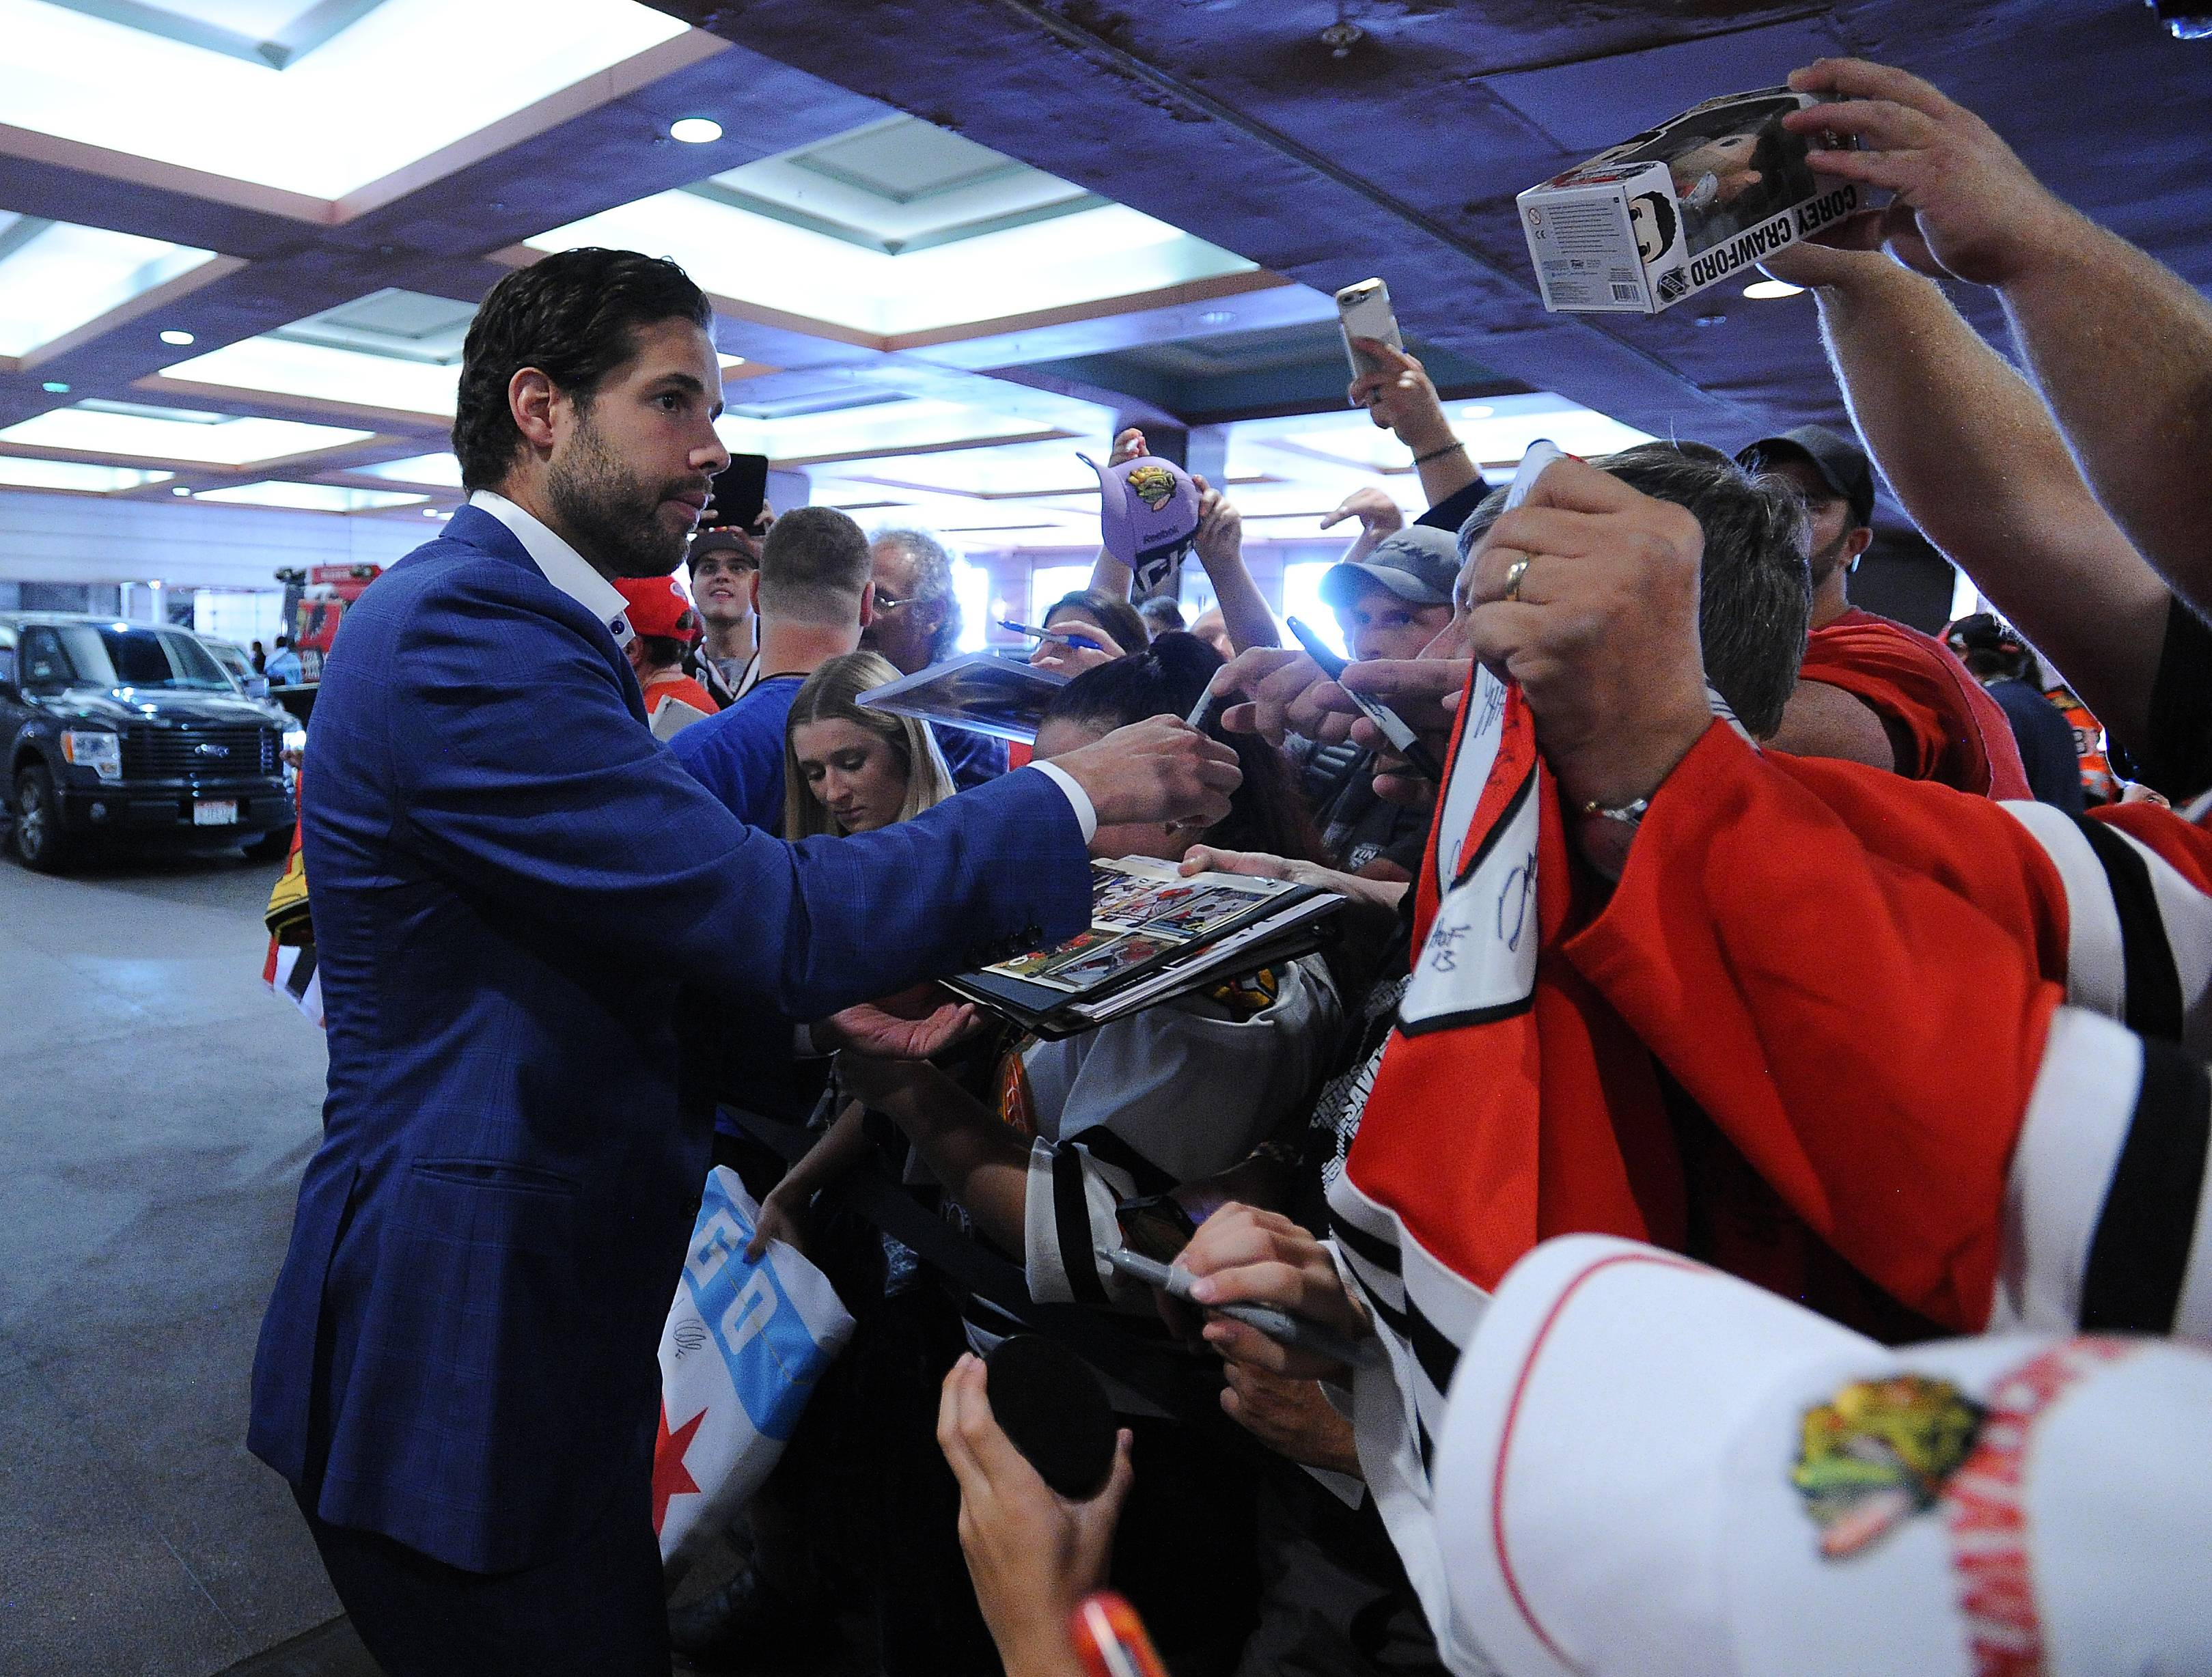 Mark Welsh/mwelsh@dailyherald.comBlackhawks Corey Crawford signs autographs for the fans after returning from missing half the season last year. He was in town for the 11th annual Blackhawks Convention in Chicago on Friday.